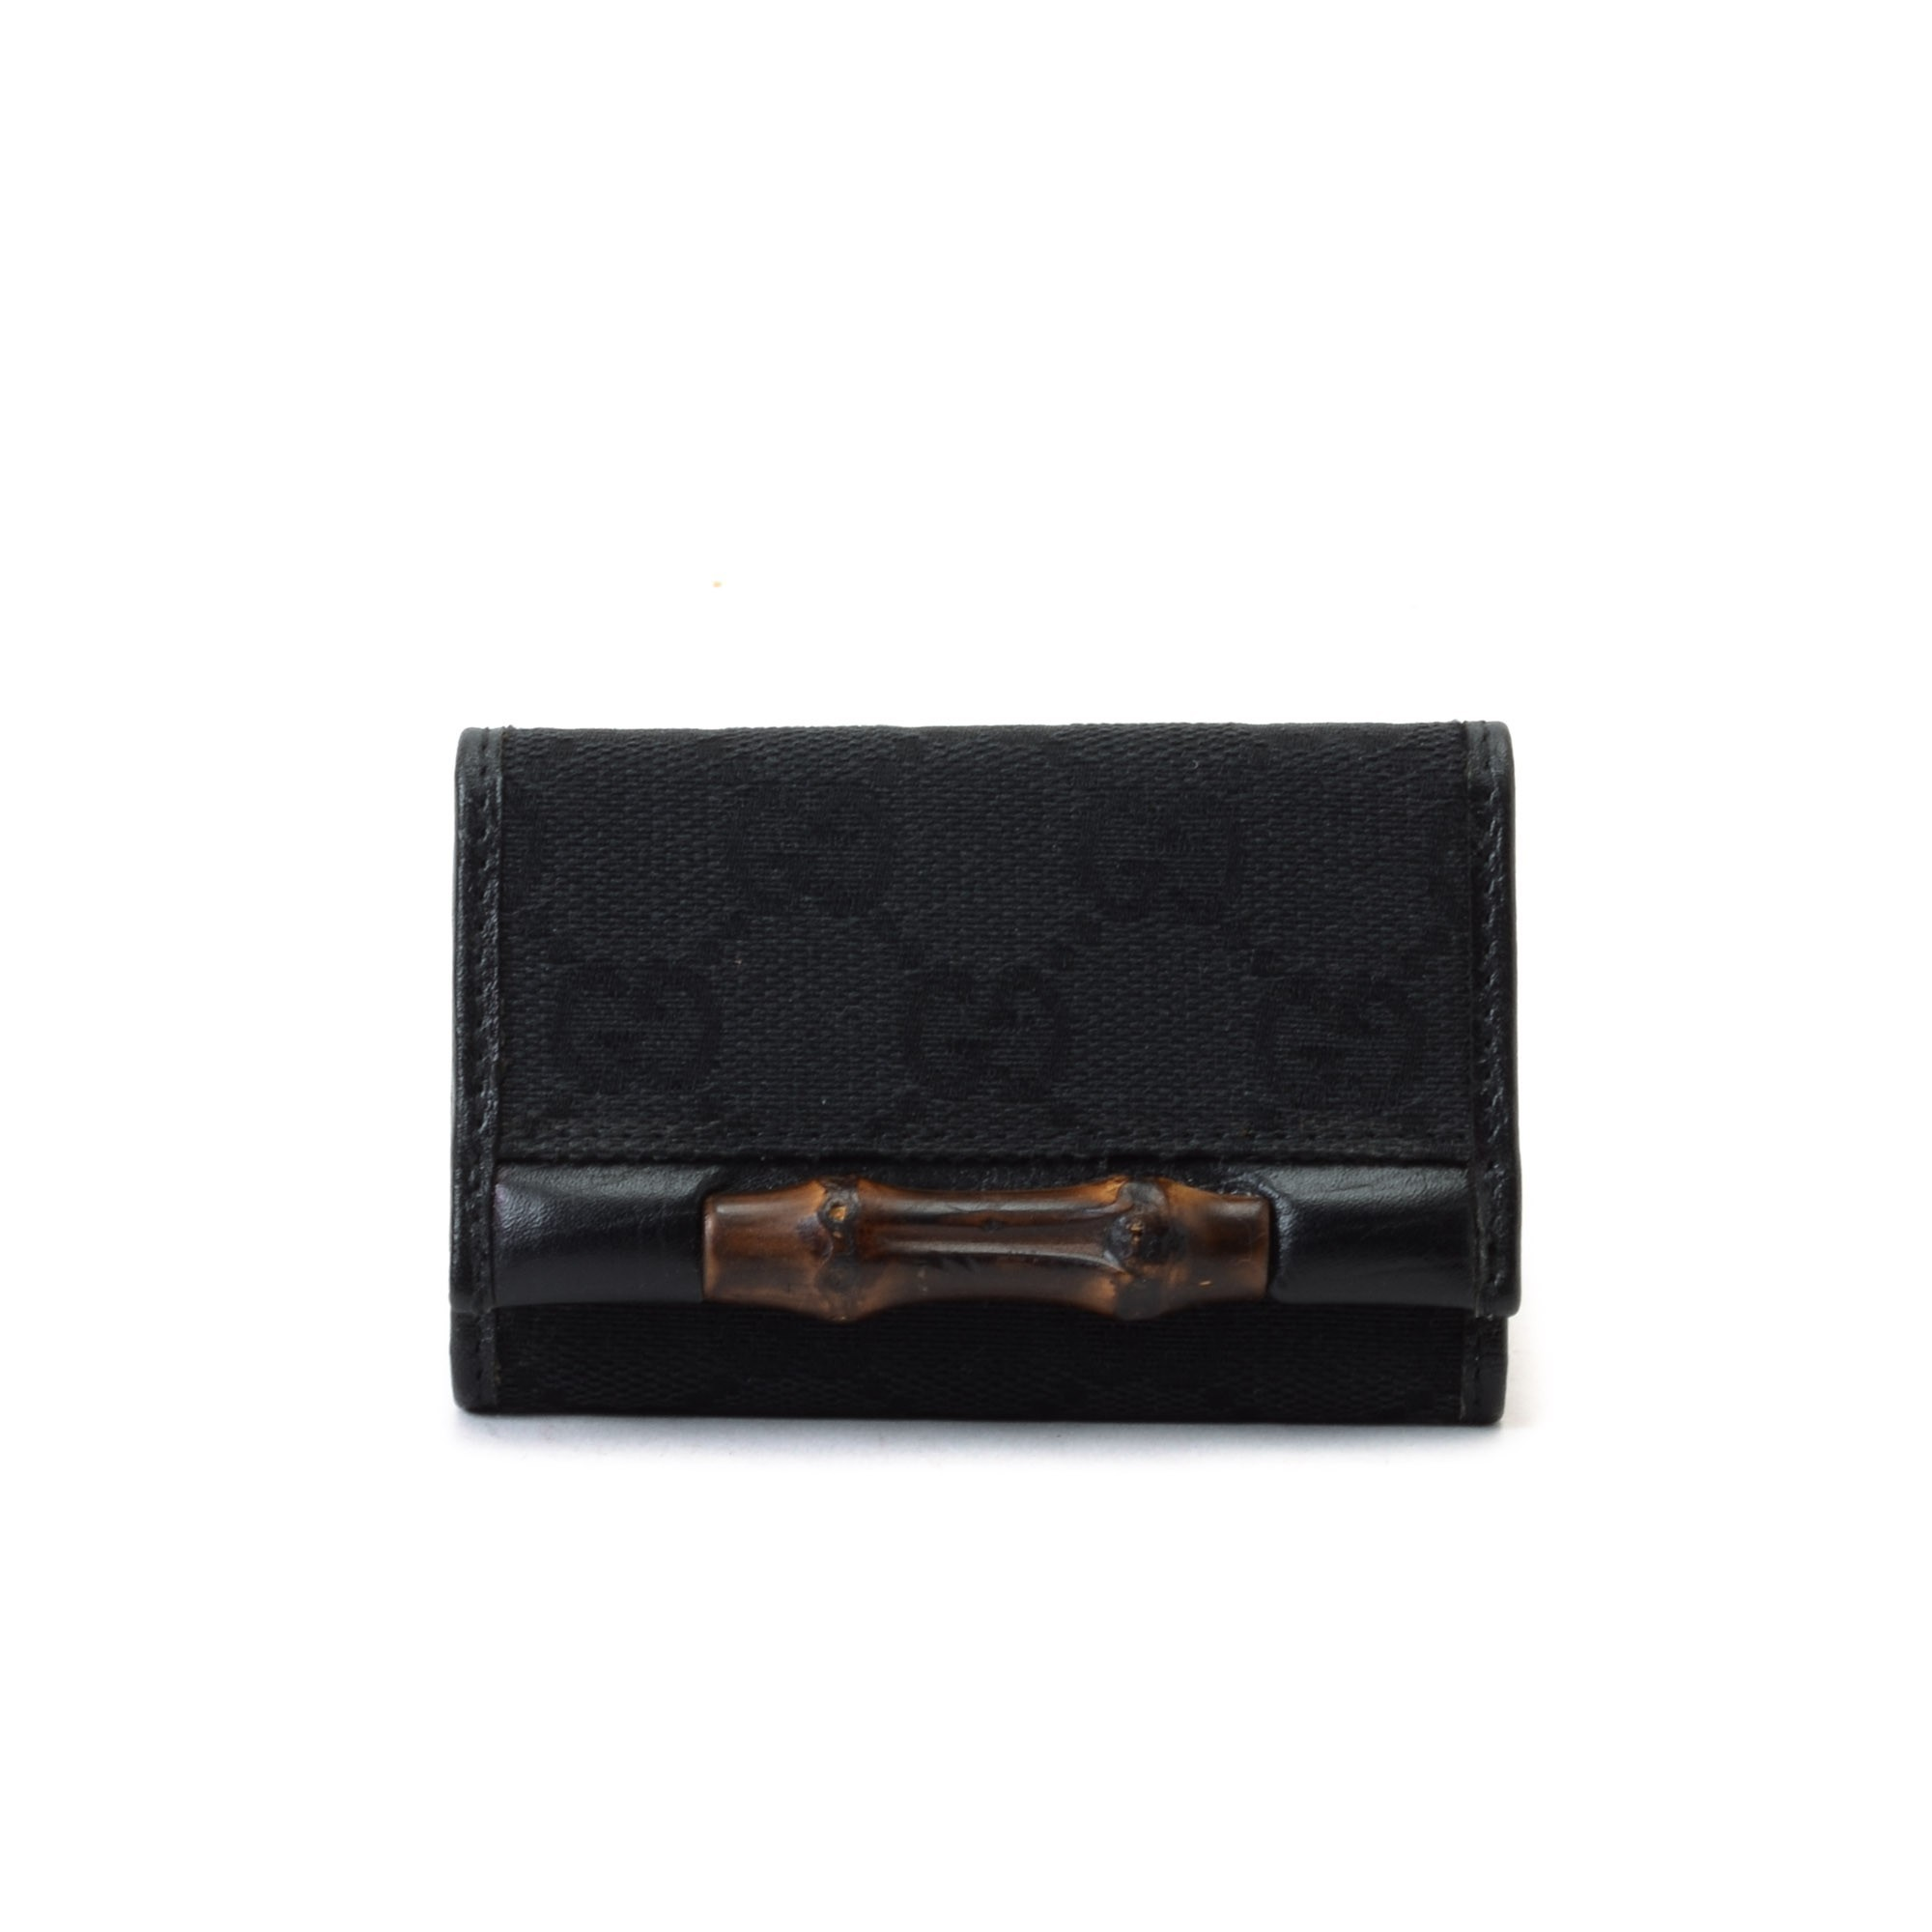 Gucci Bamboo Key Case GG Black Canvas Other Small Leather Good ...